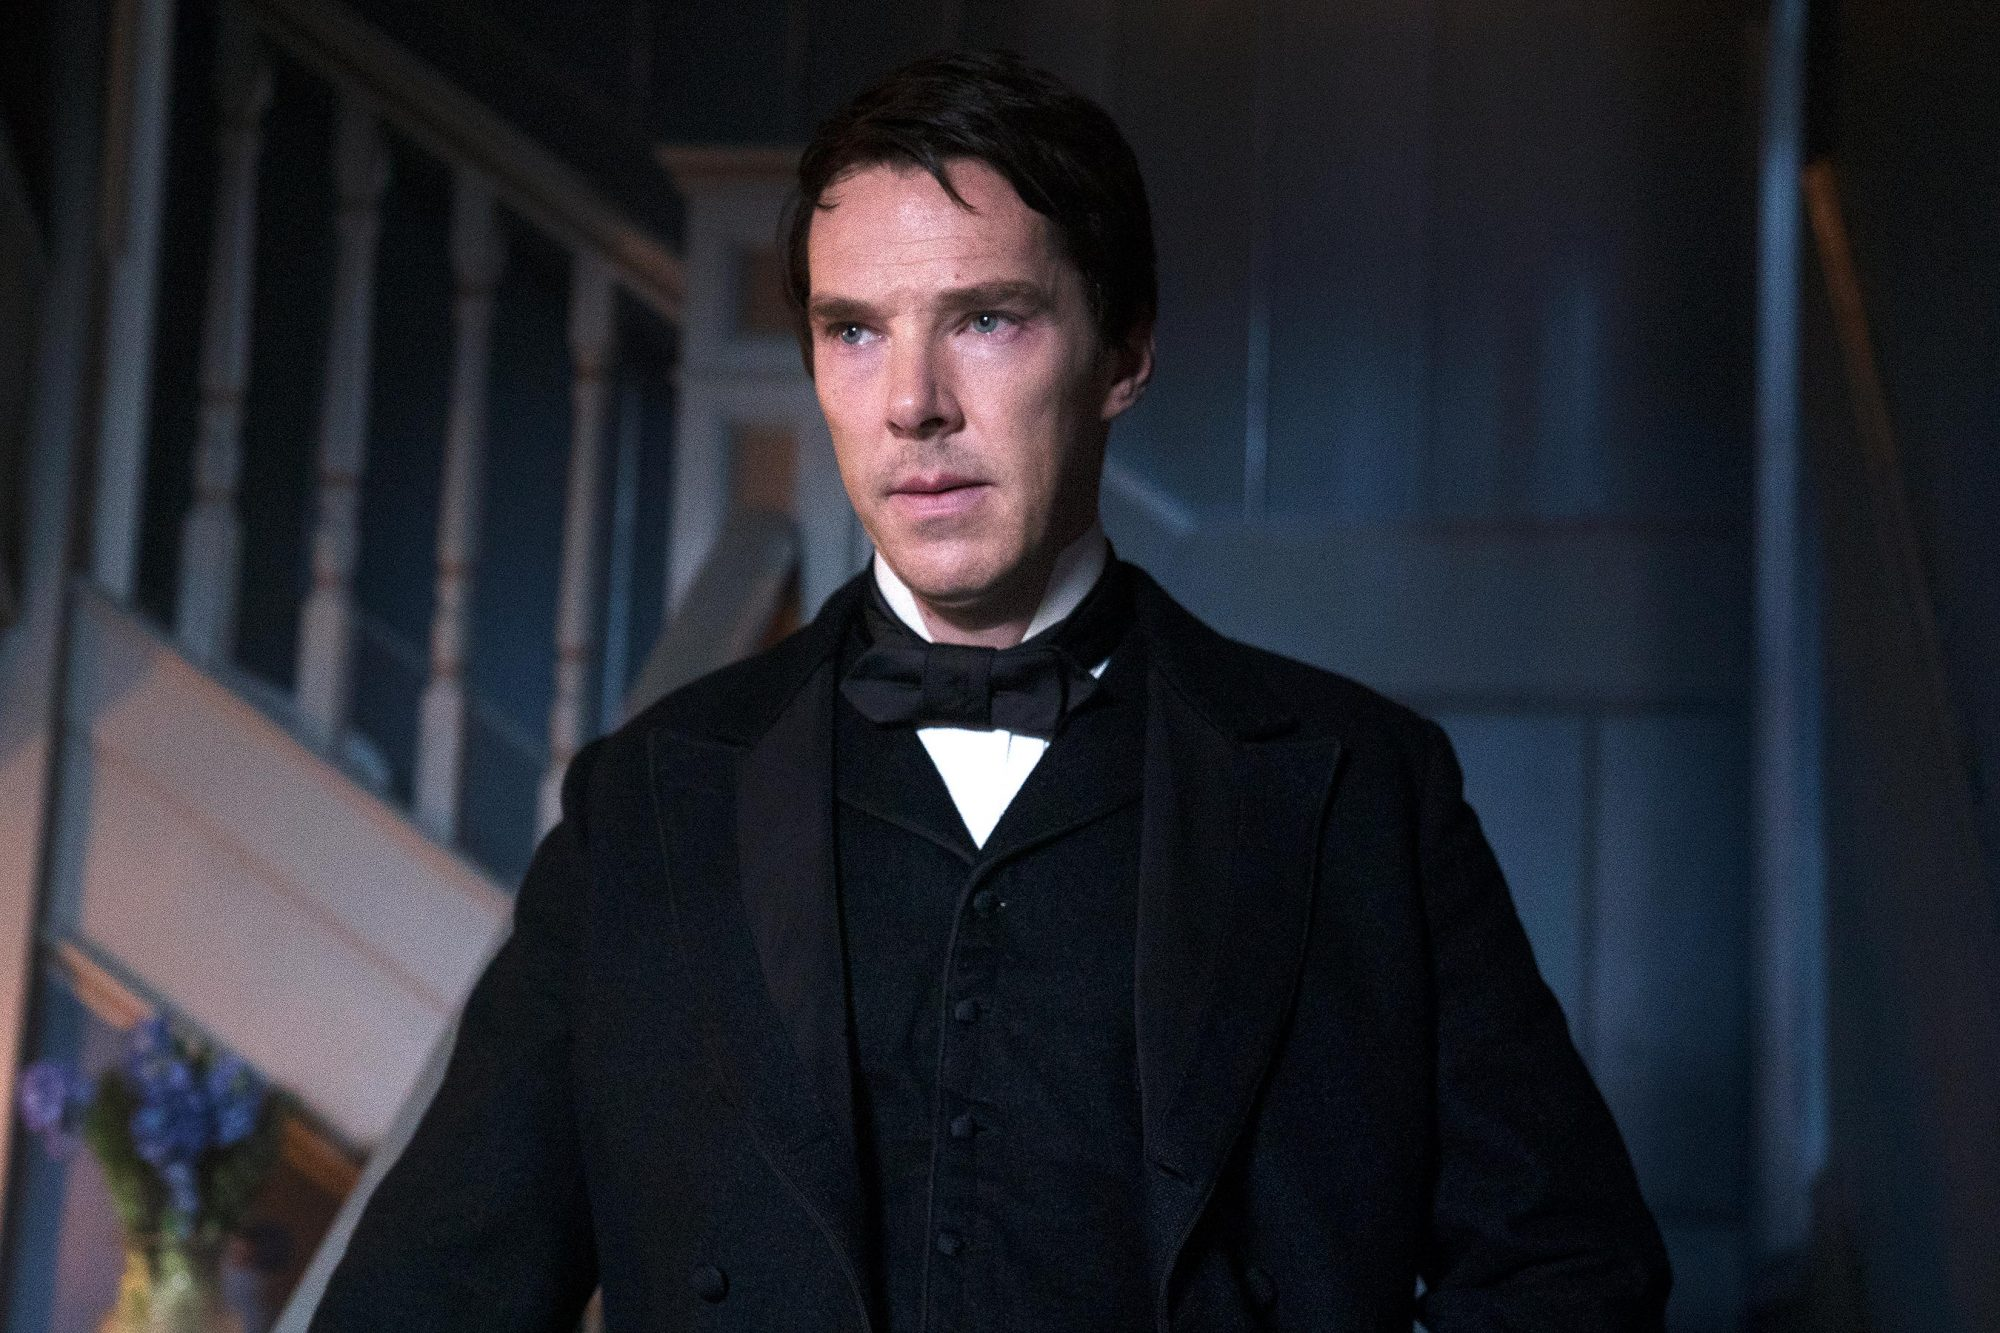 Benedict Cumberbatch as Thomas Edison CR: 101 Studios